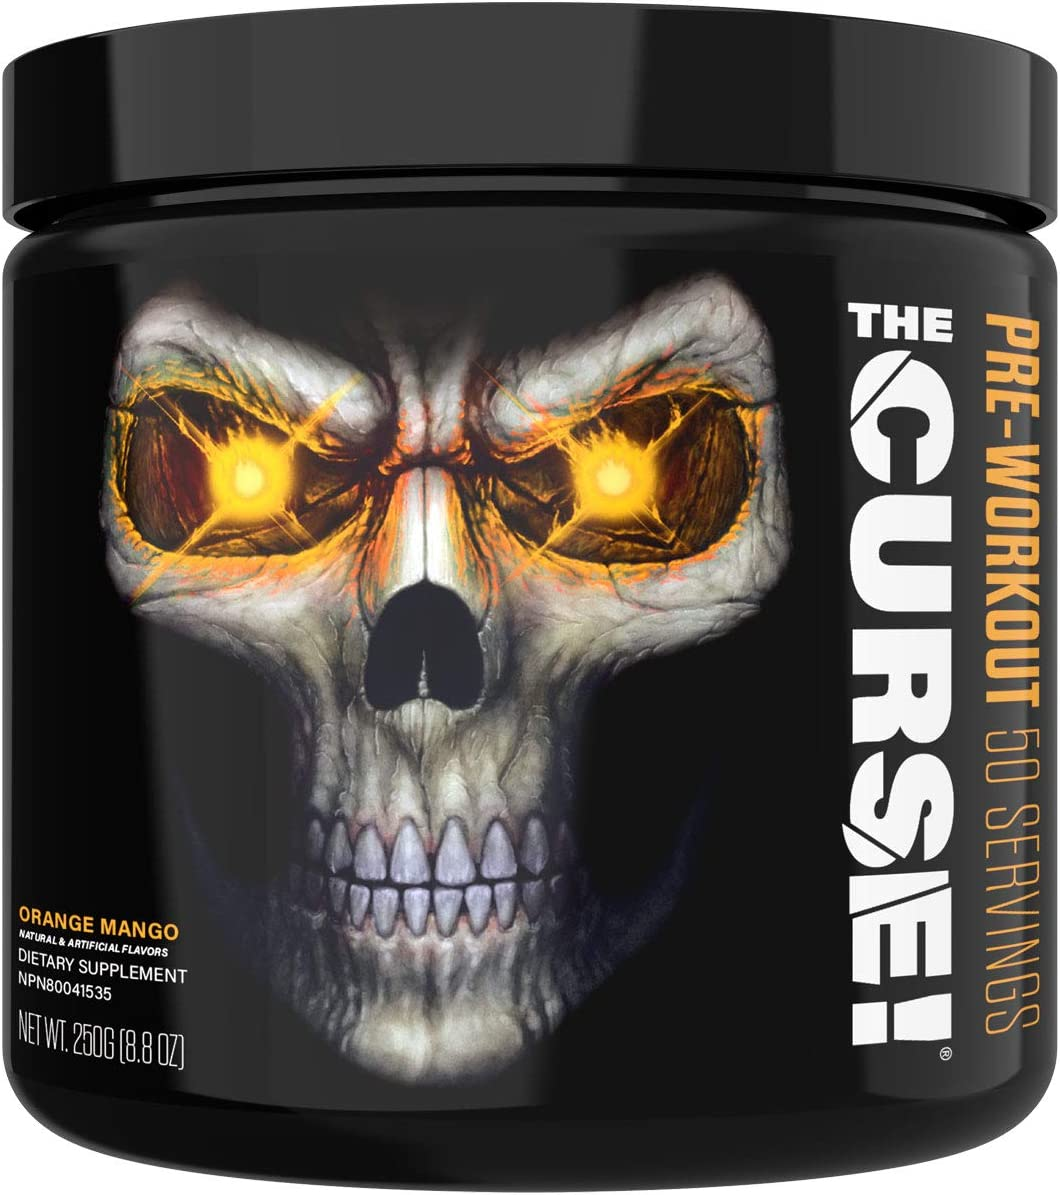 JNX Sports The Curse Pre Workout Supplement – Intense Energy Focus, Instant Strength Gains, Enhanced Blood Flow – Nitric Oxide Booster with Creatine Caffeine – Men Women Orange Mango 50 Srv